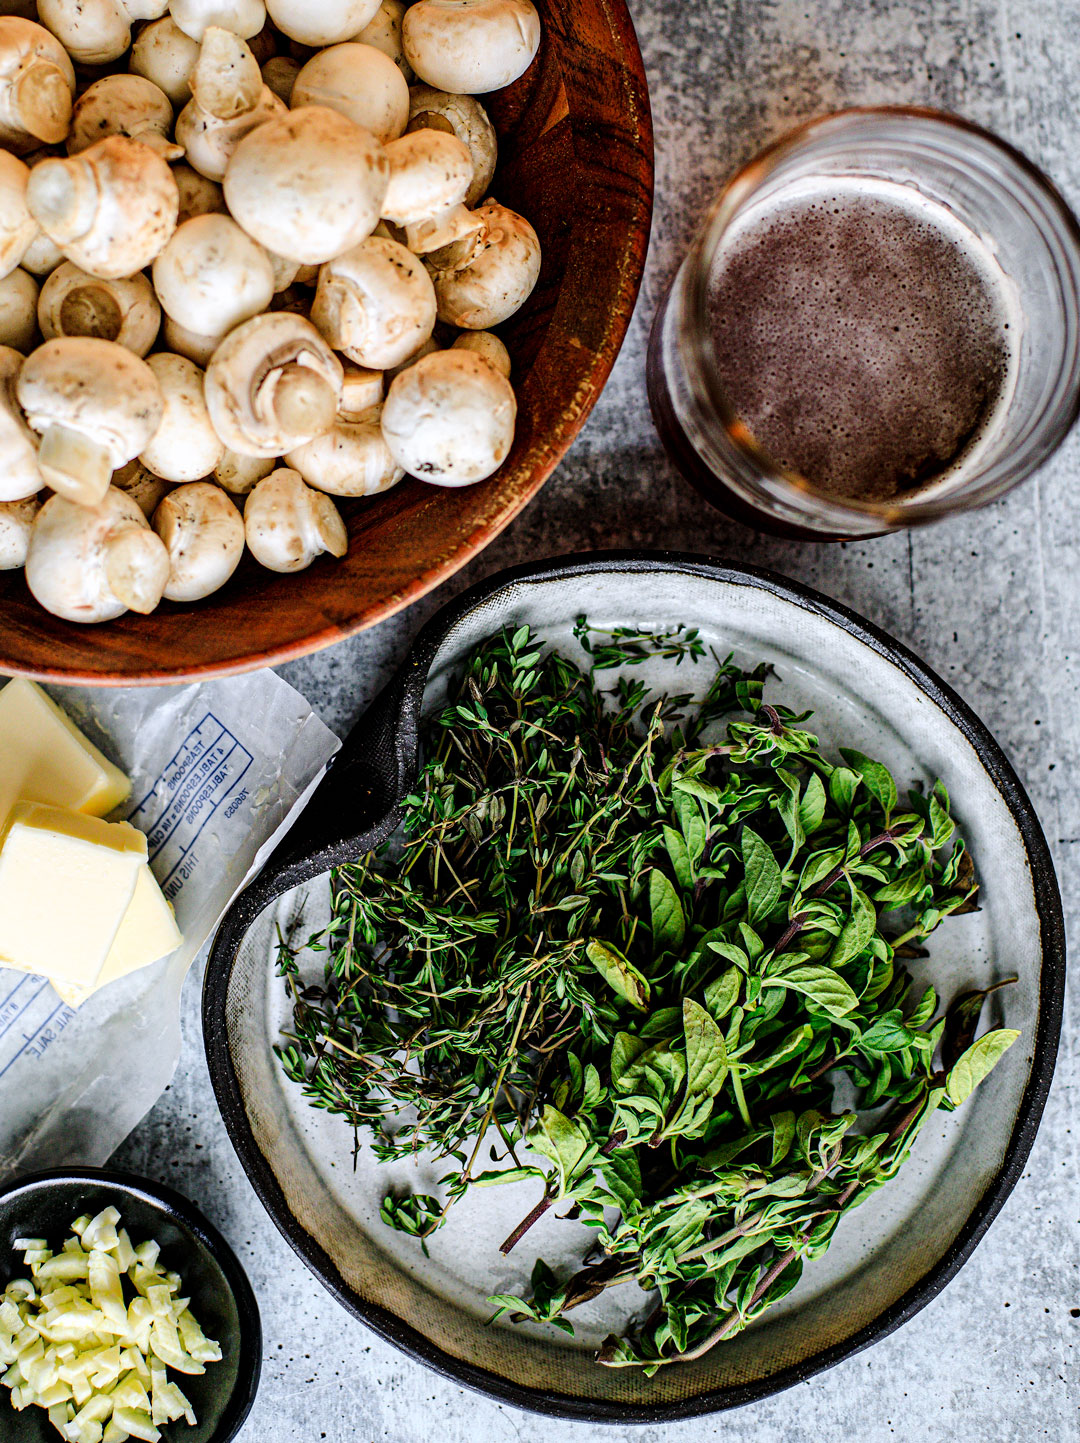 Tablescape of ingredients including a bowl of button mushrooms, a plate full of fresh herbs, a glass of beer, pats of butter, and a pinch bowl of minced garlic.